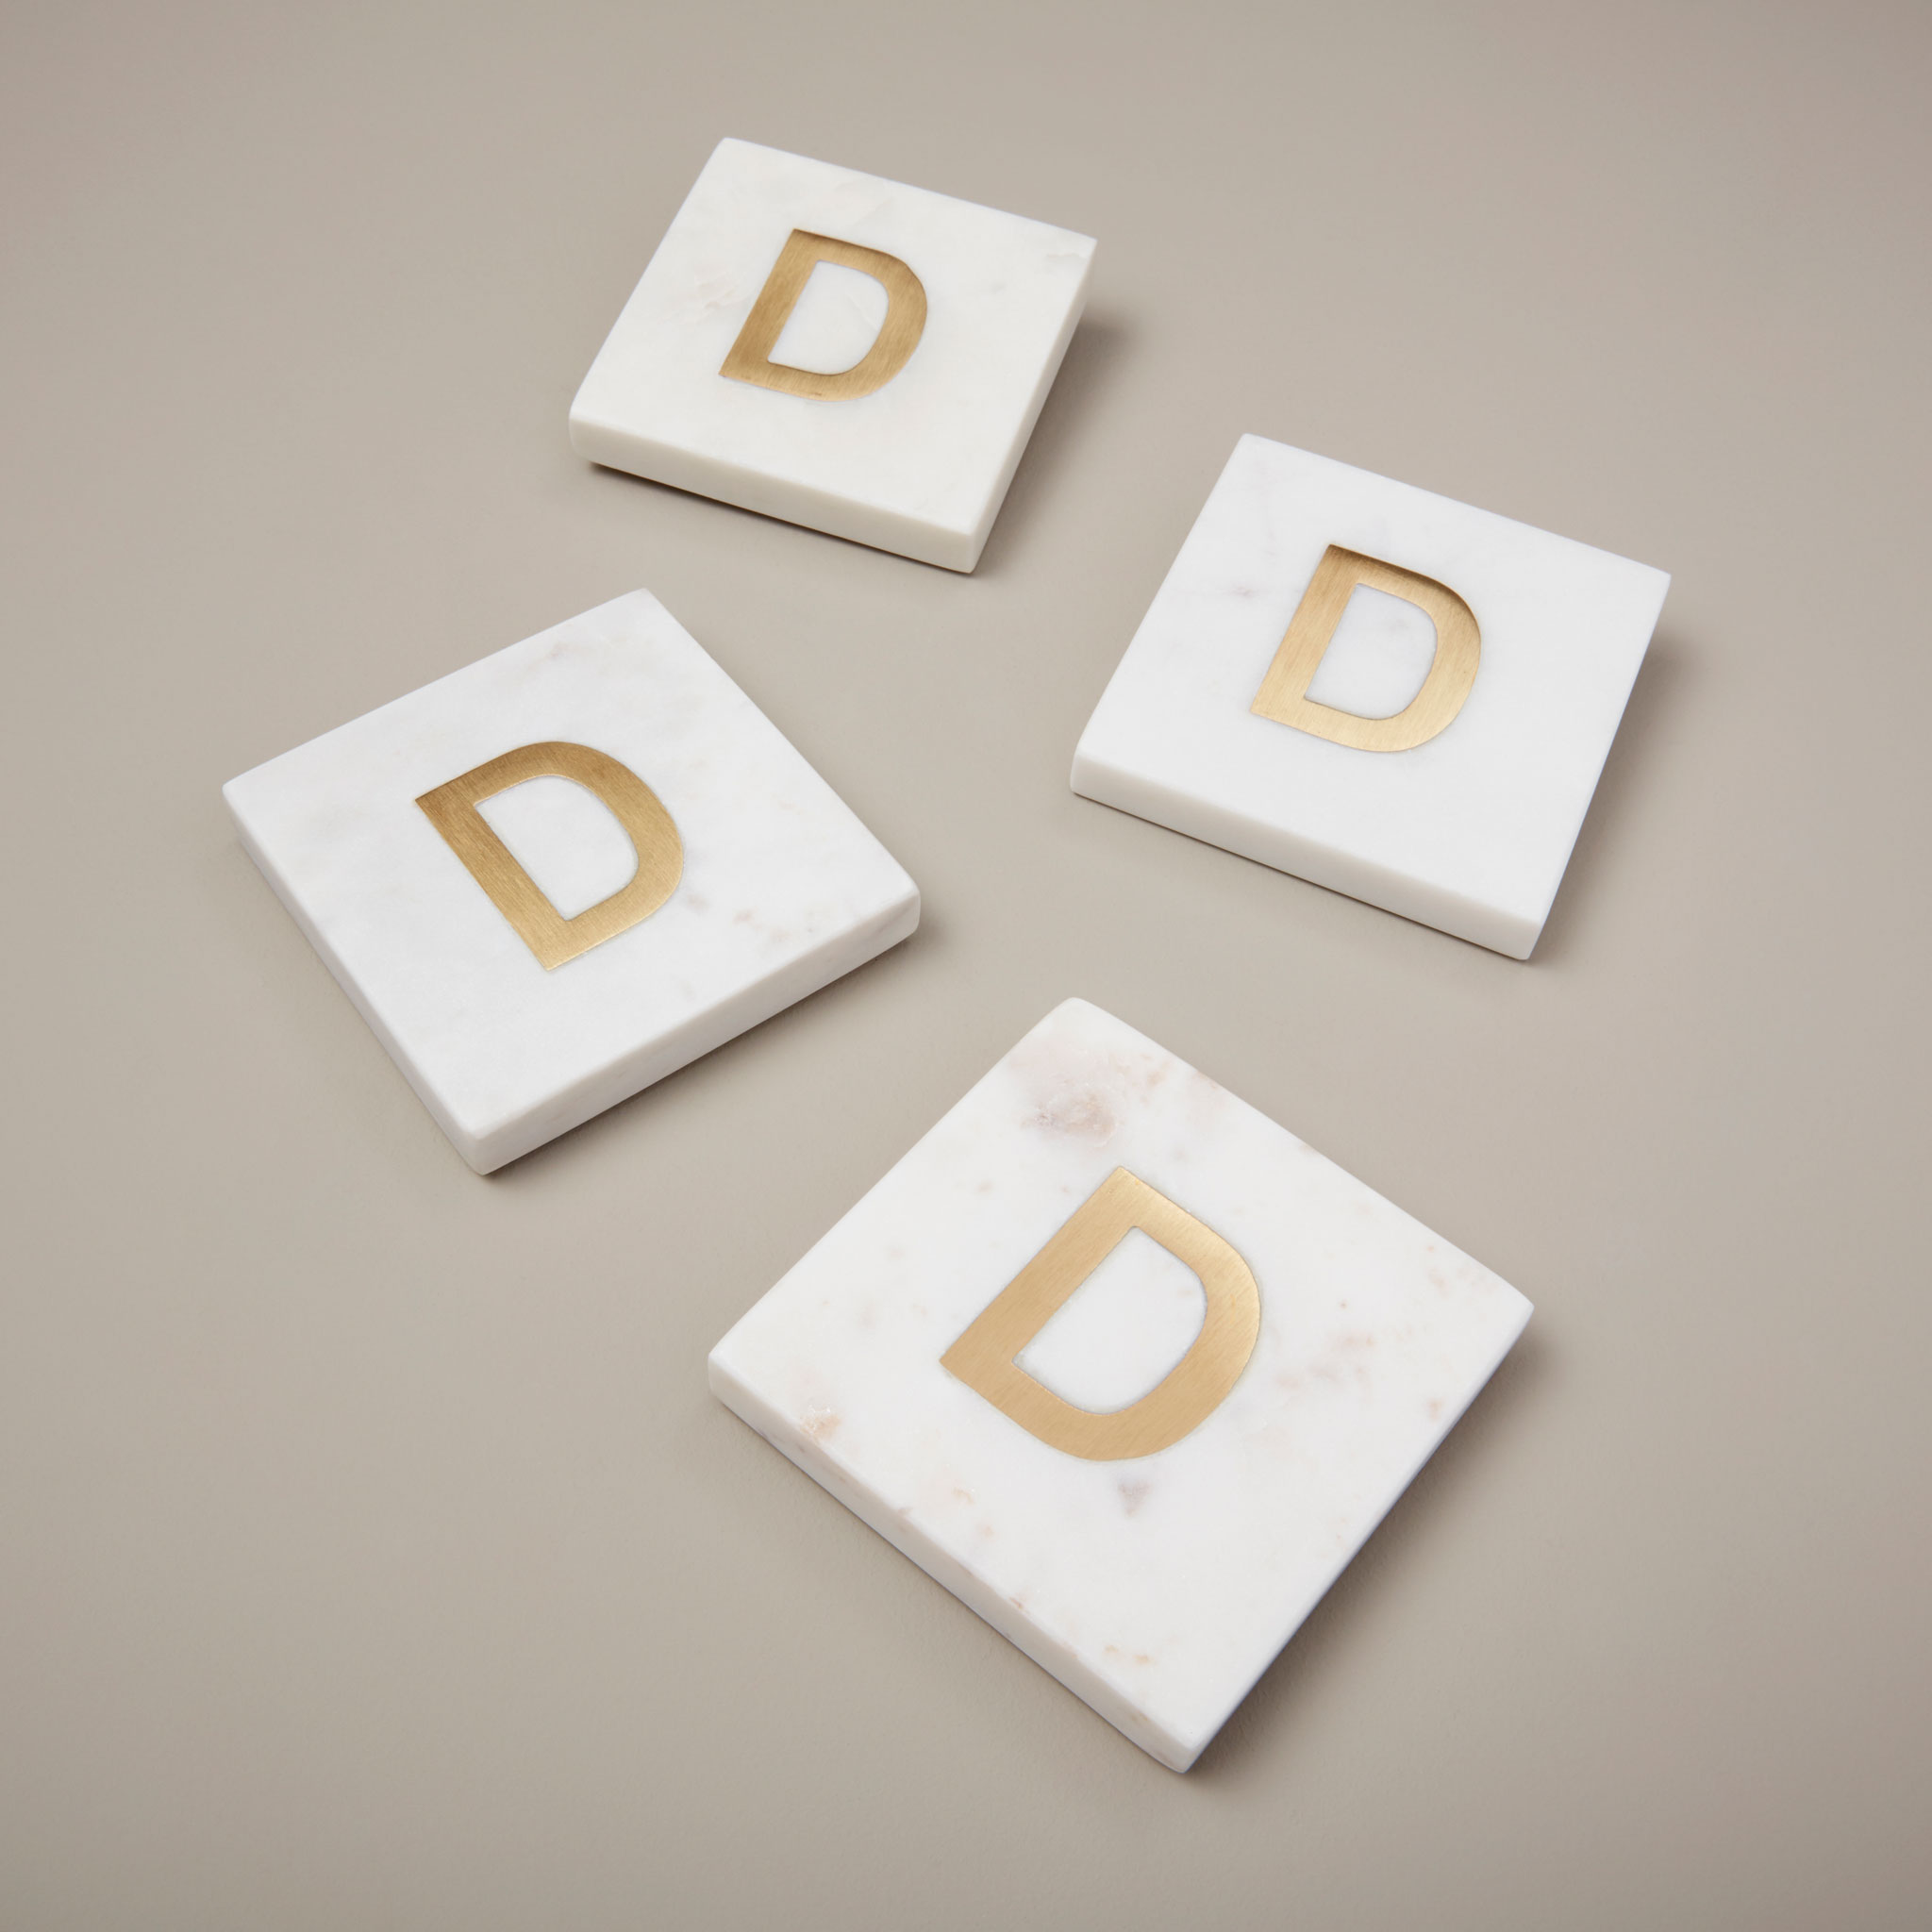 Be-Home_White-Marble-and-Gold-Monogram-Coasters-Set-of-4-D_580-203